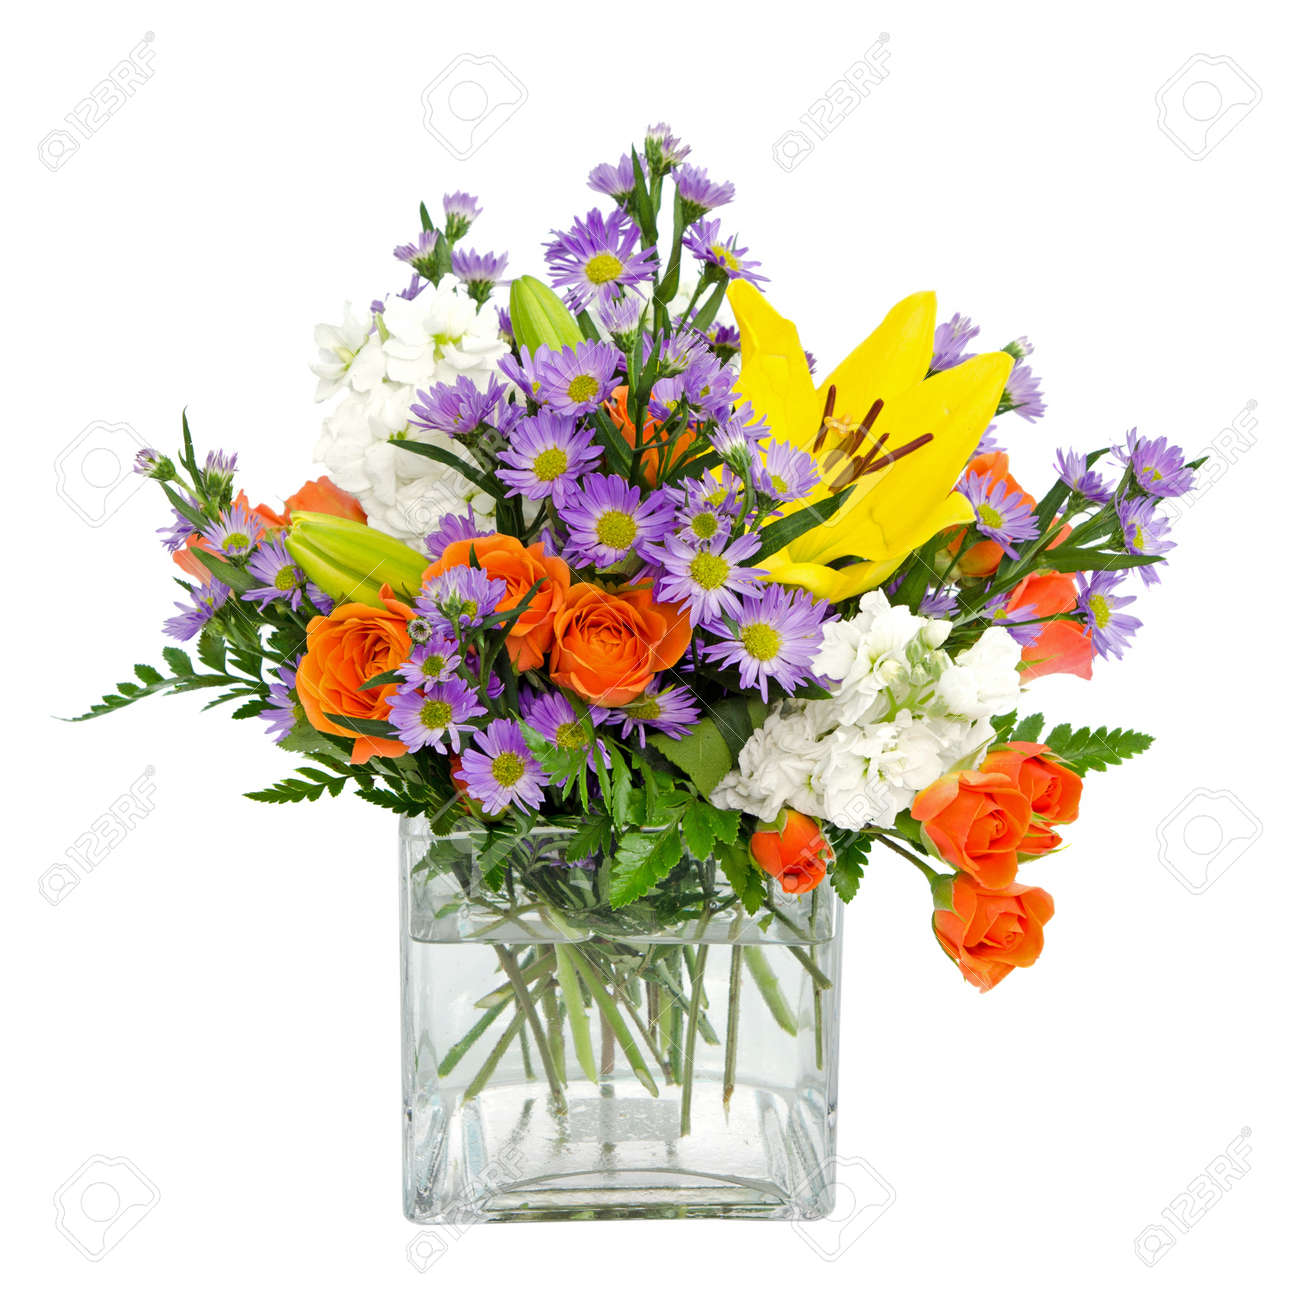 Colorful flower arrangement centerpiece in square glass vase stock colorful flower arrangement centerpiece in square glass vase with roses daisies and llilies isolated on izmirmasajfo